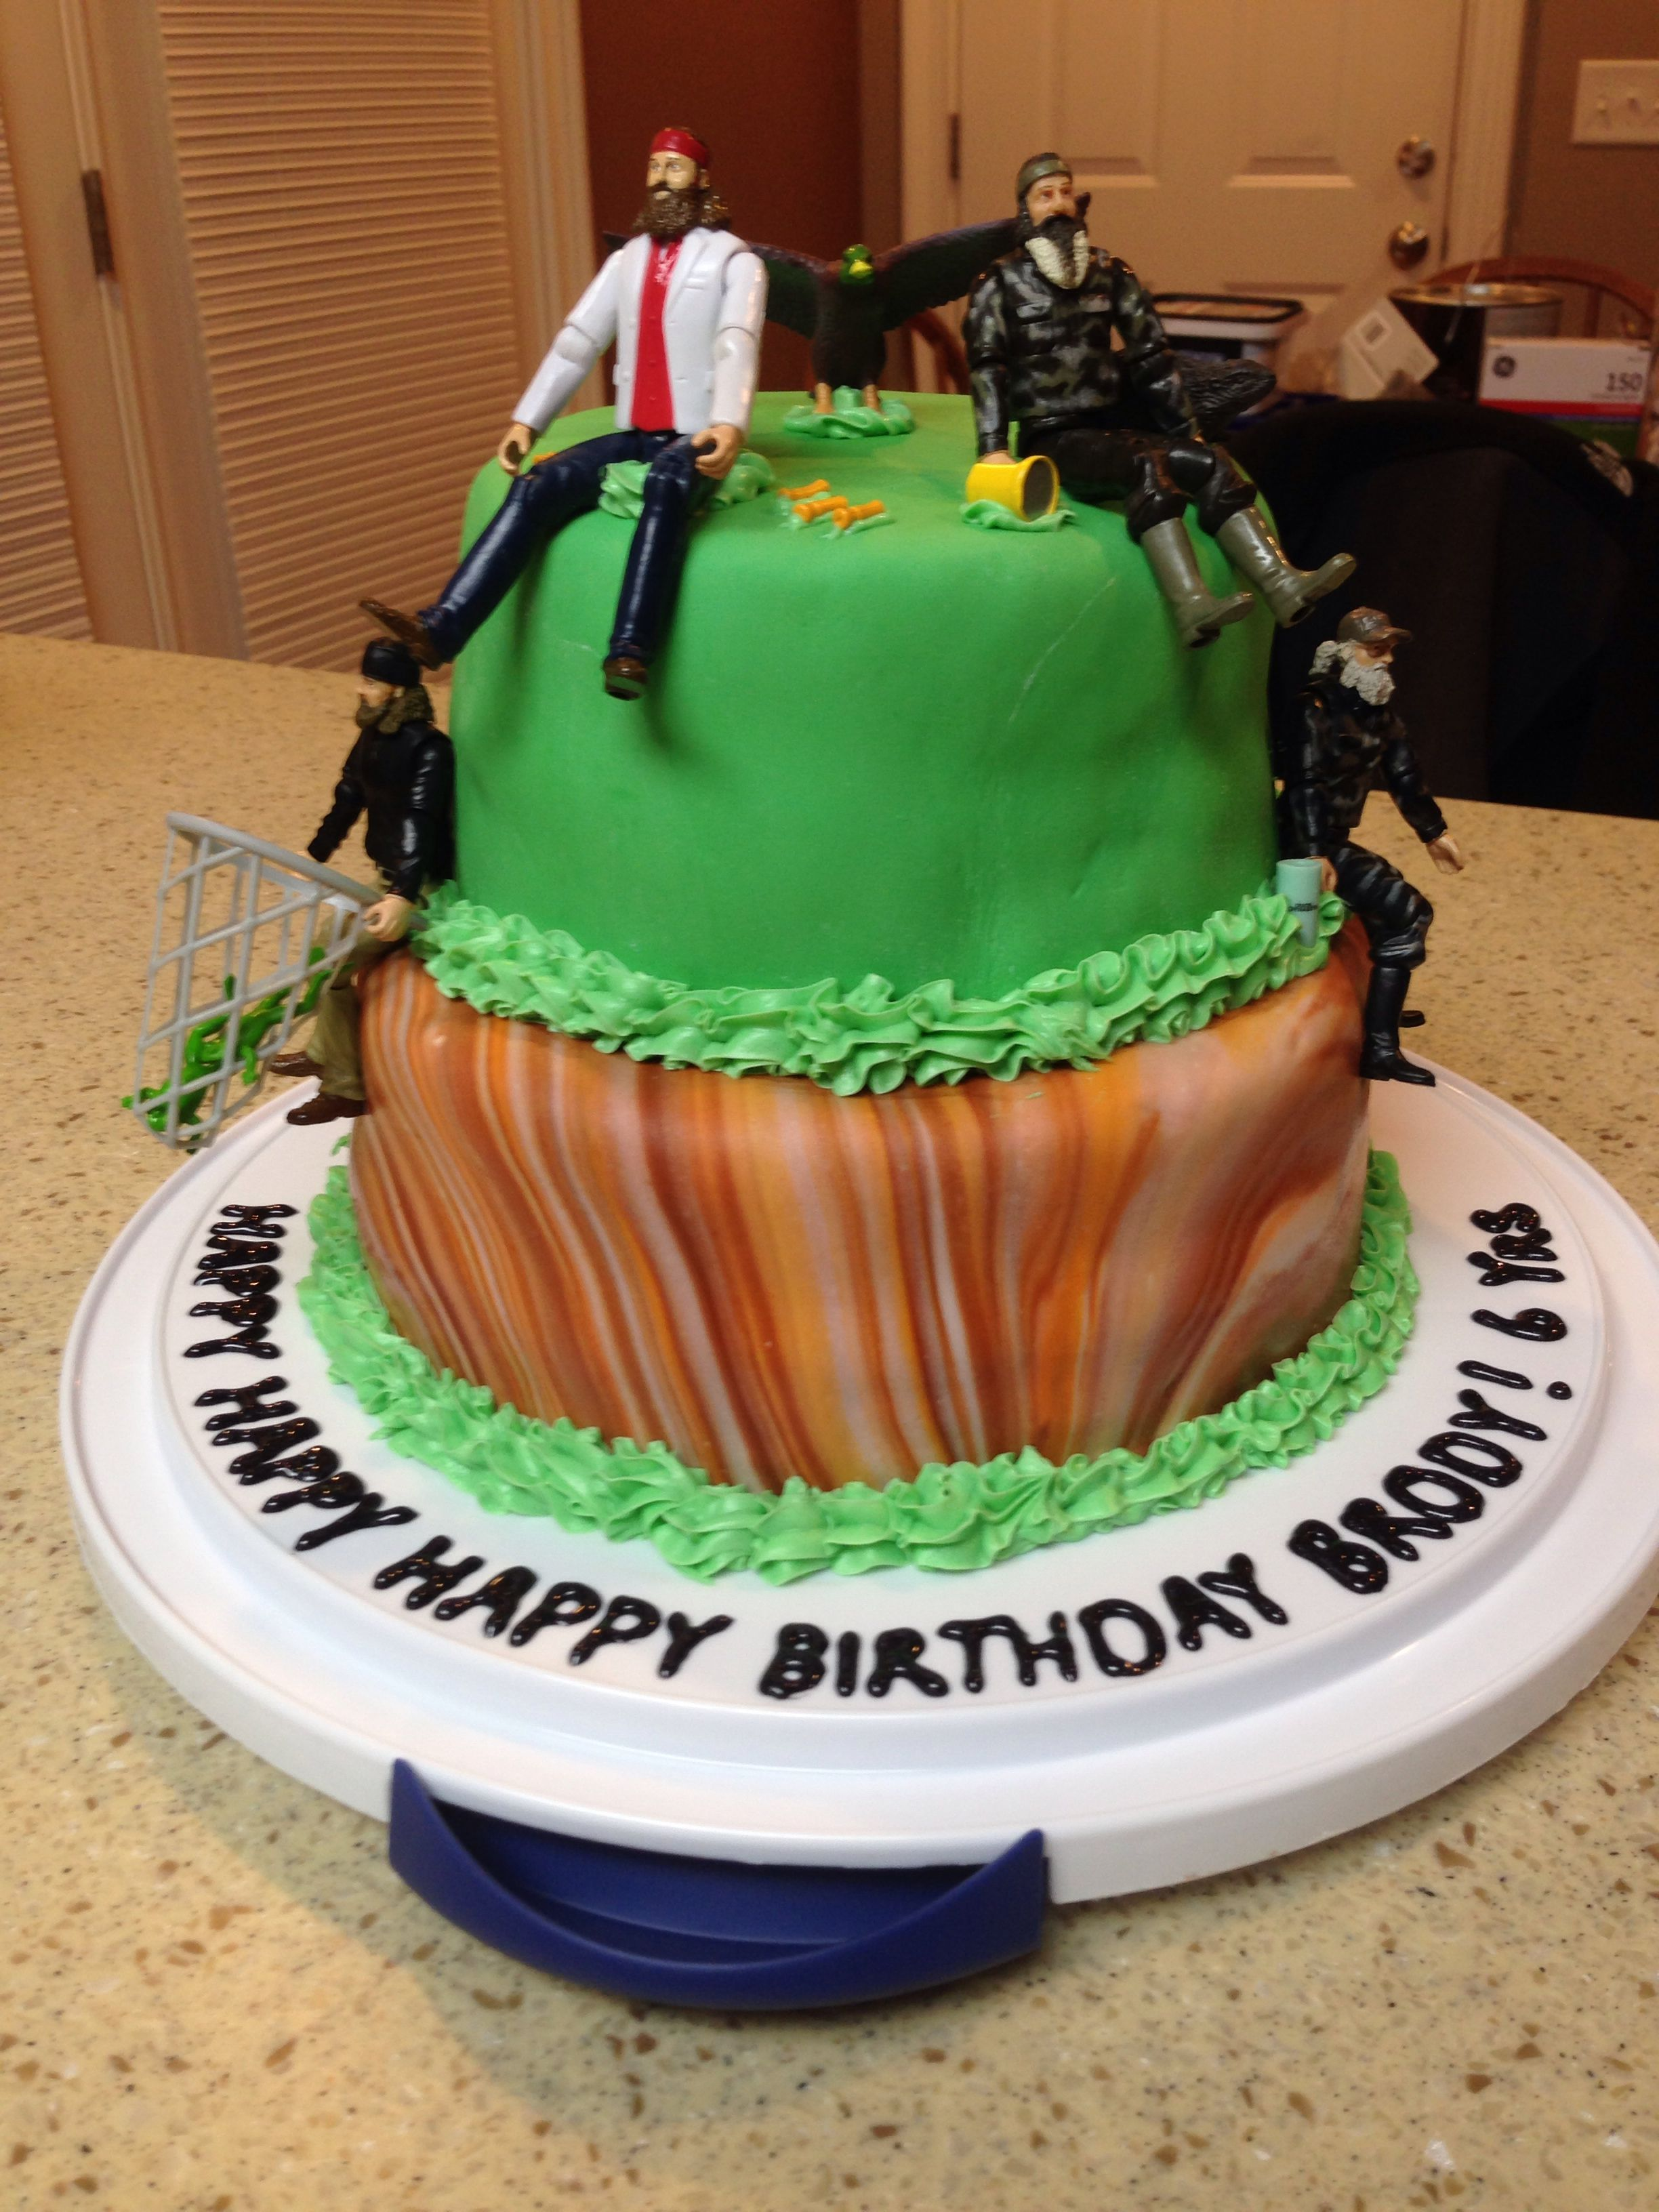 My 6 year olds birthday cake this year, duck dynasty cake!!!